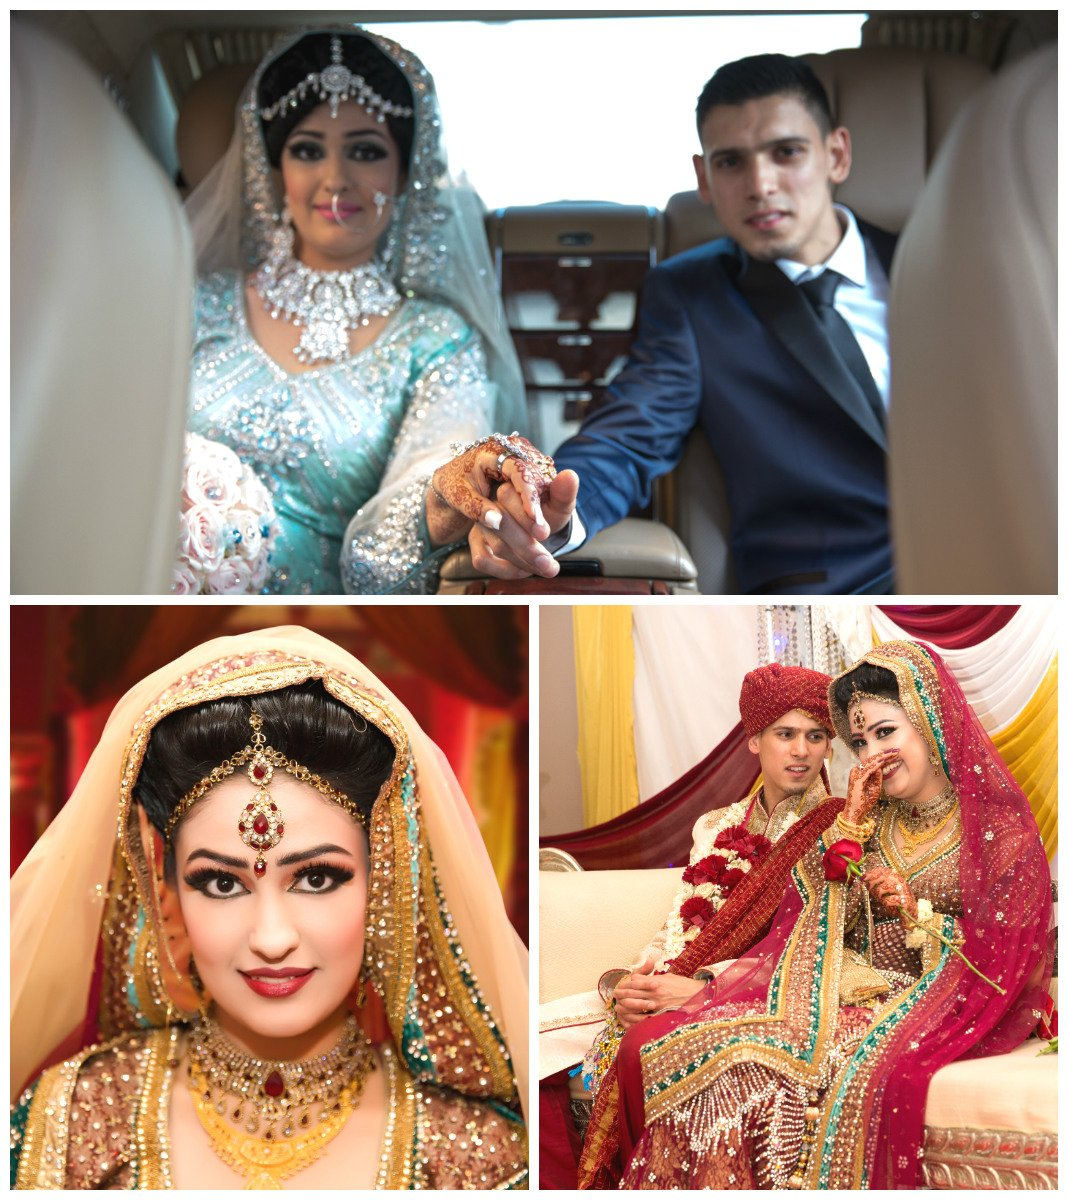 Muslim wedding photos and videos Birmingham